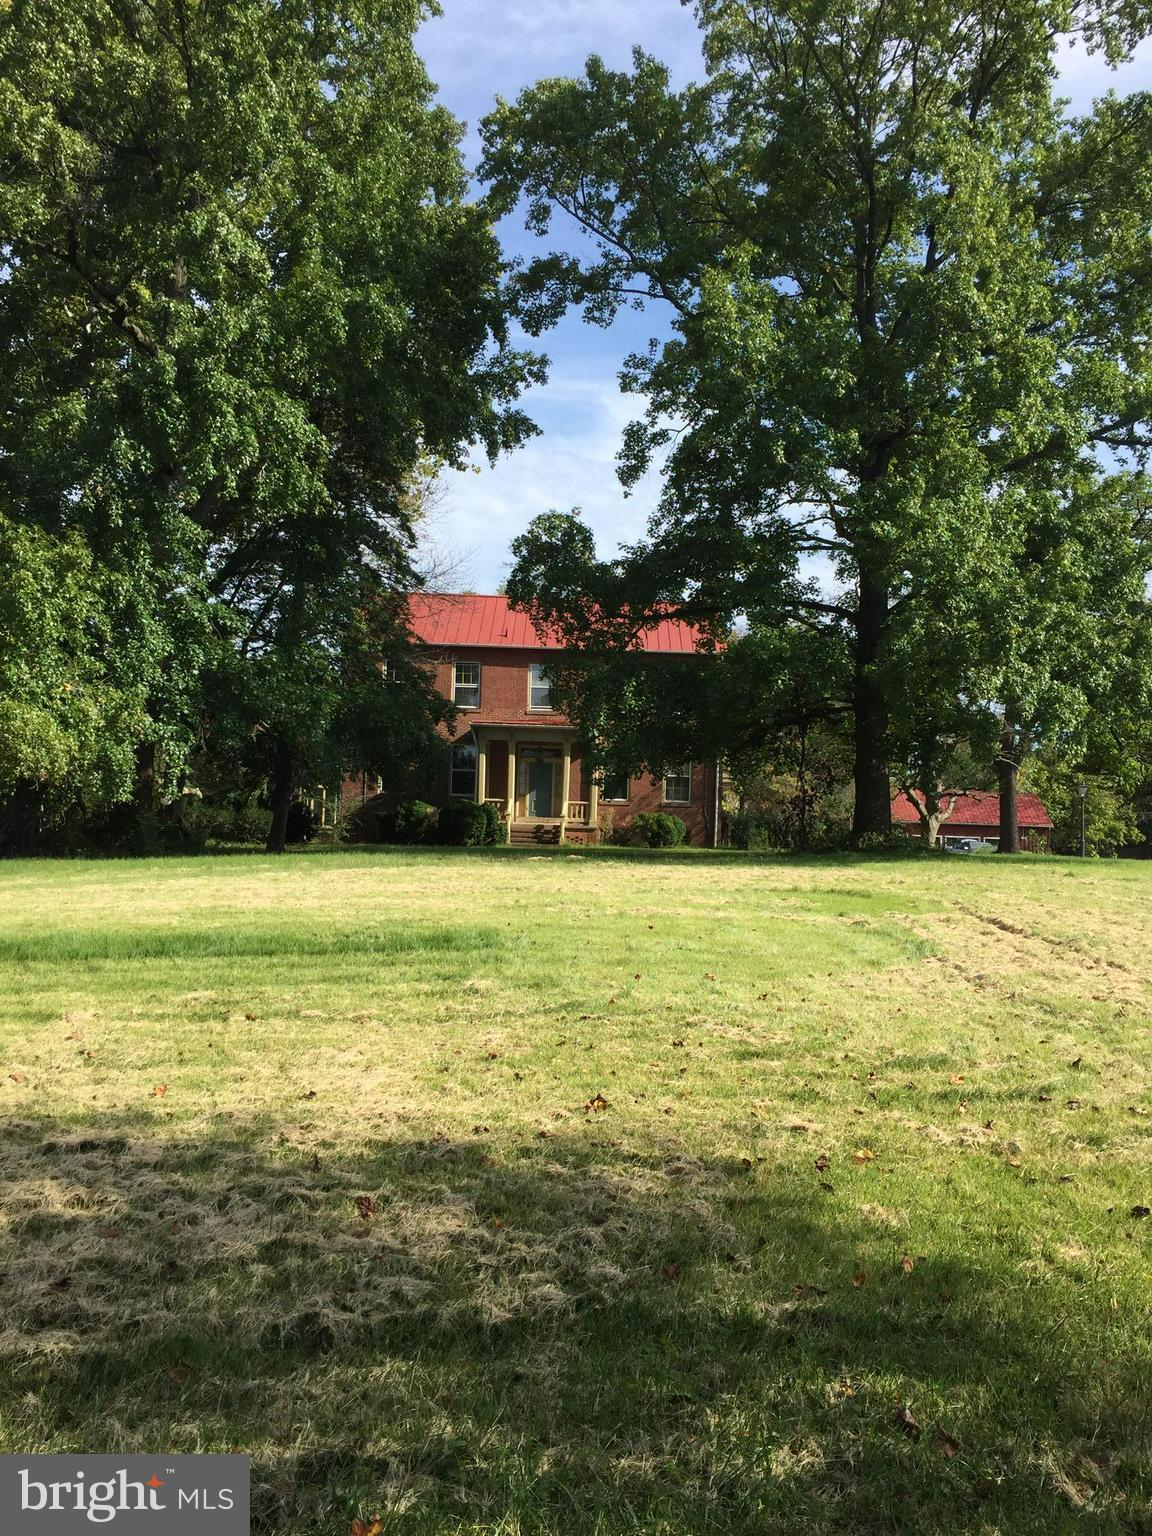 Historic Holly Knoll on 11+ a. w/idyllic approach (lawn care inc!) In add'n to 6 BRs & 4 baths, house includes lg. fam.rm., sunrm, spacious LR & library, mud rm, front & back porches, barn w/2 garage bays. 3 HVAC zones, huge windows, 8 fireplaces!, bucolic setting, yet very convenient to Rt.7, 286, 267, Dulles, Tysons. Photos do not do it justice! Step back in time & reflect on life in the 1800's!